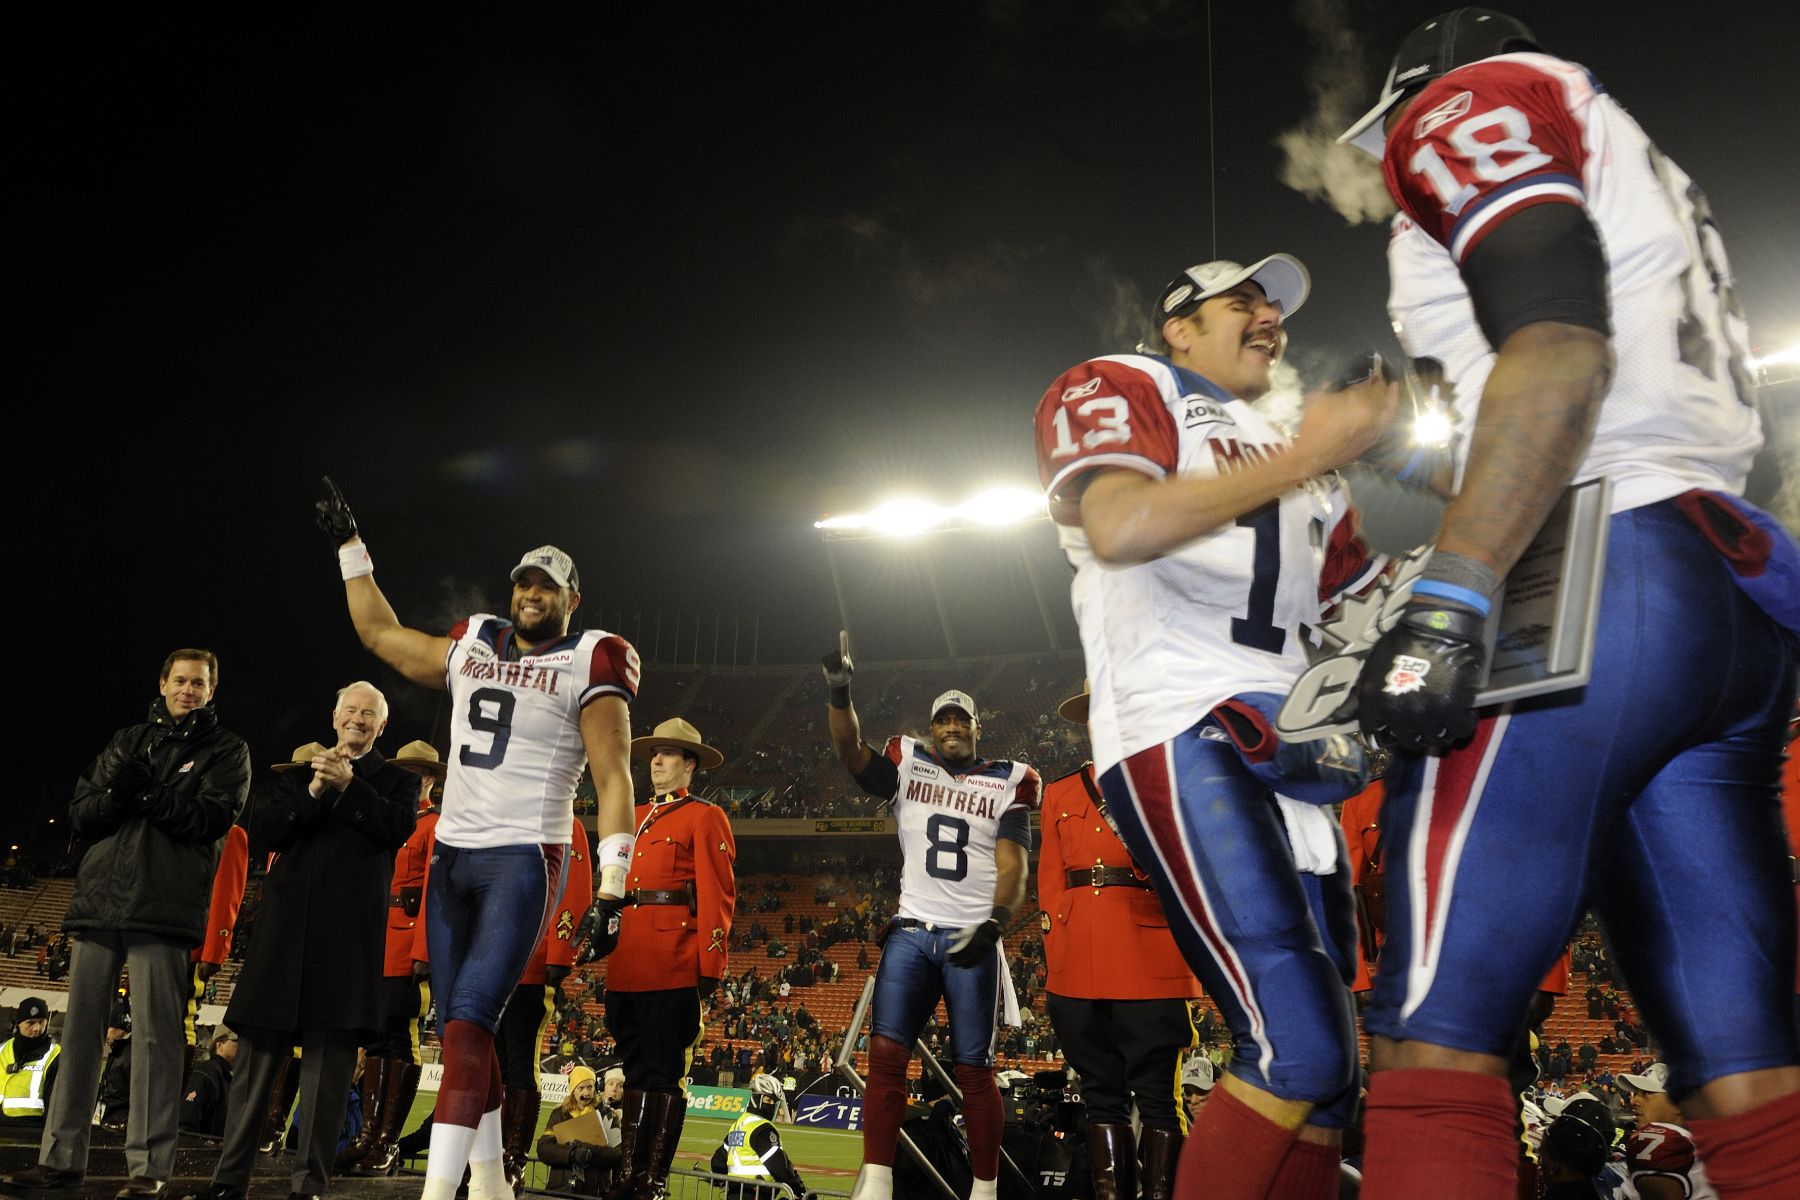 The Montréal Alouettes won the championship game and players walked up on stage for the presentation of the Grey Cup.